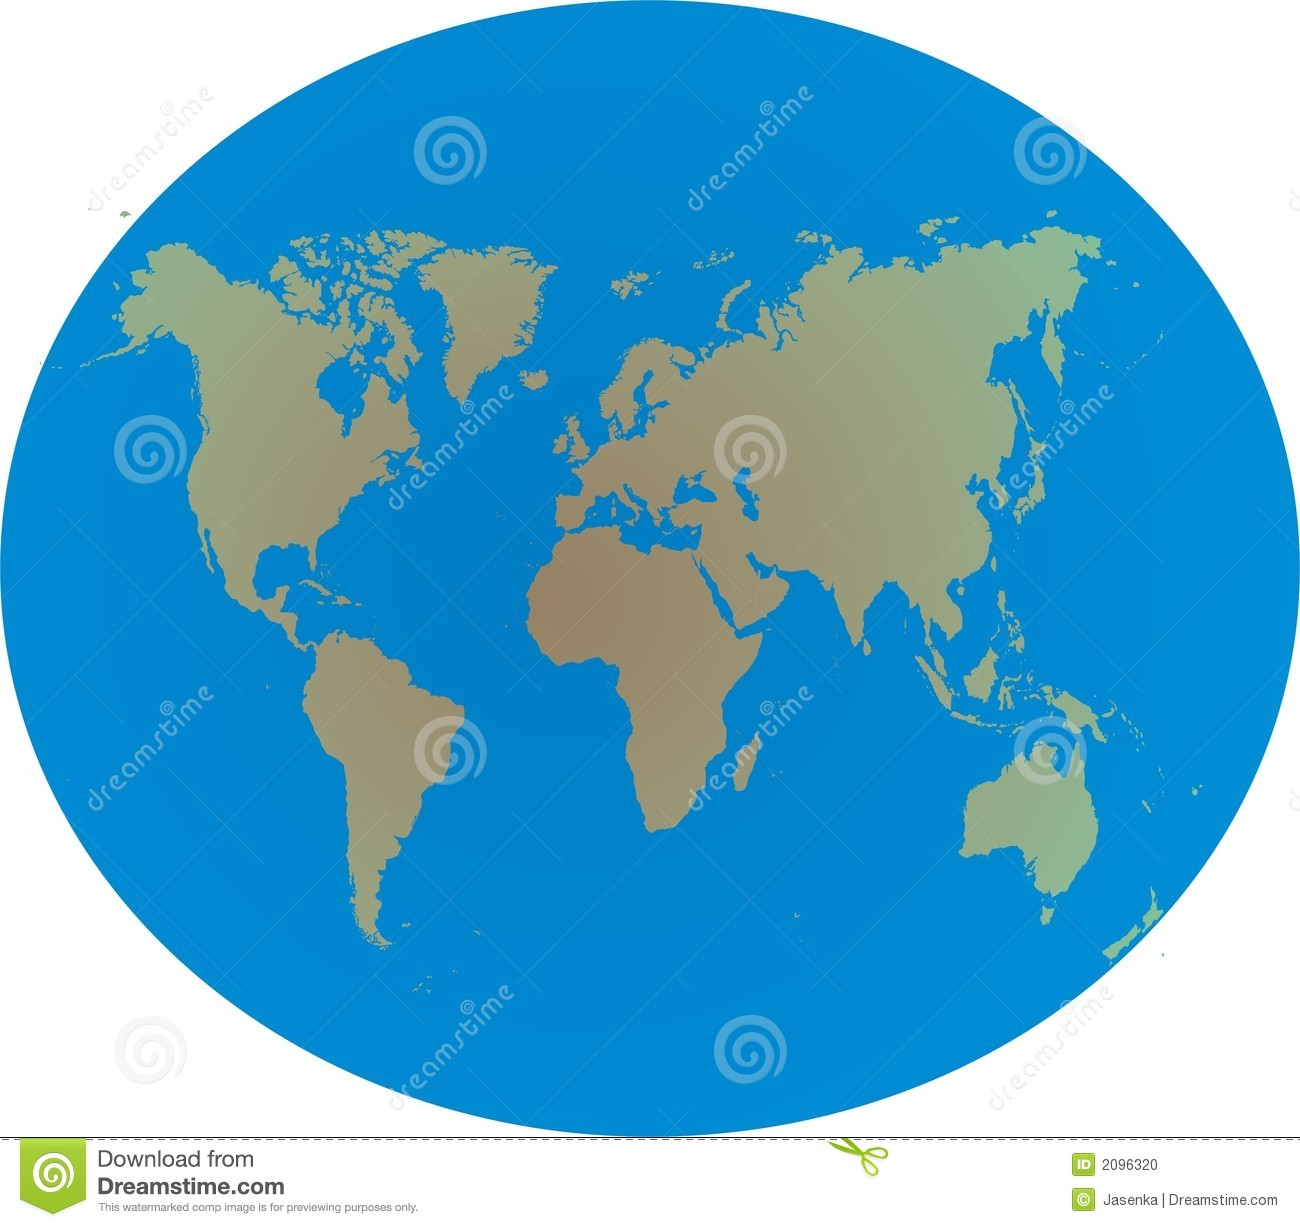 World Map Globe World map on globe stock vector. Illustration of background   2096320 World Map Globe